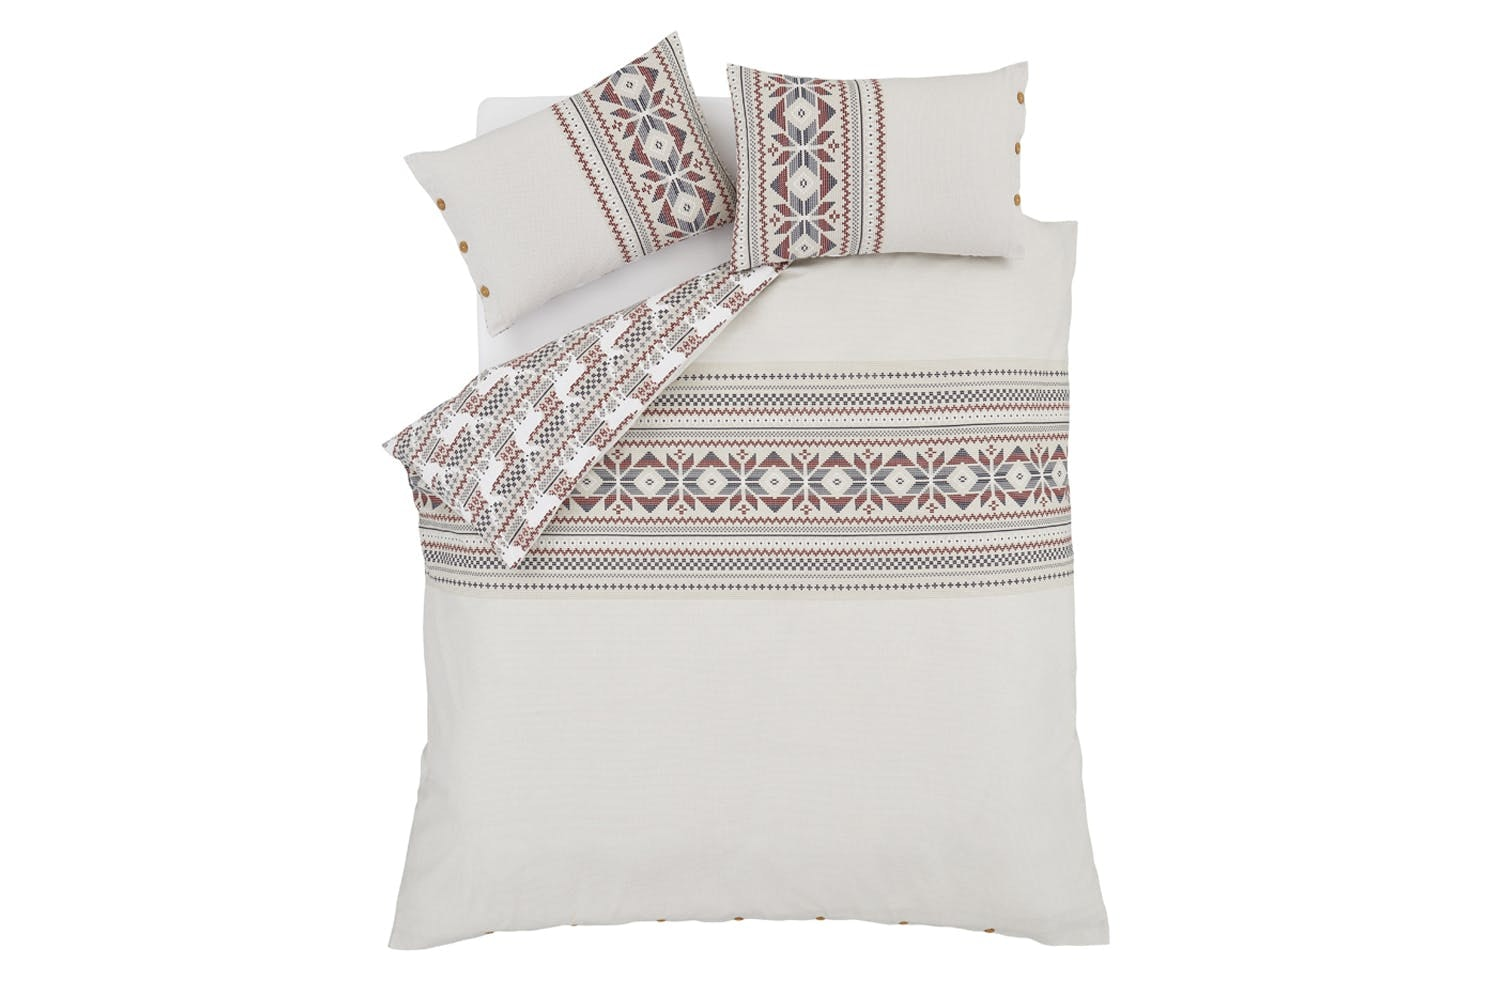 Brushed Printed Knit Duvet Cover Set | King